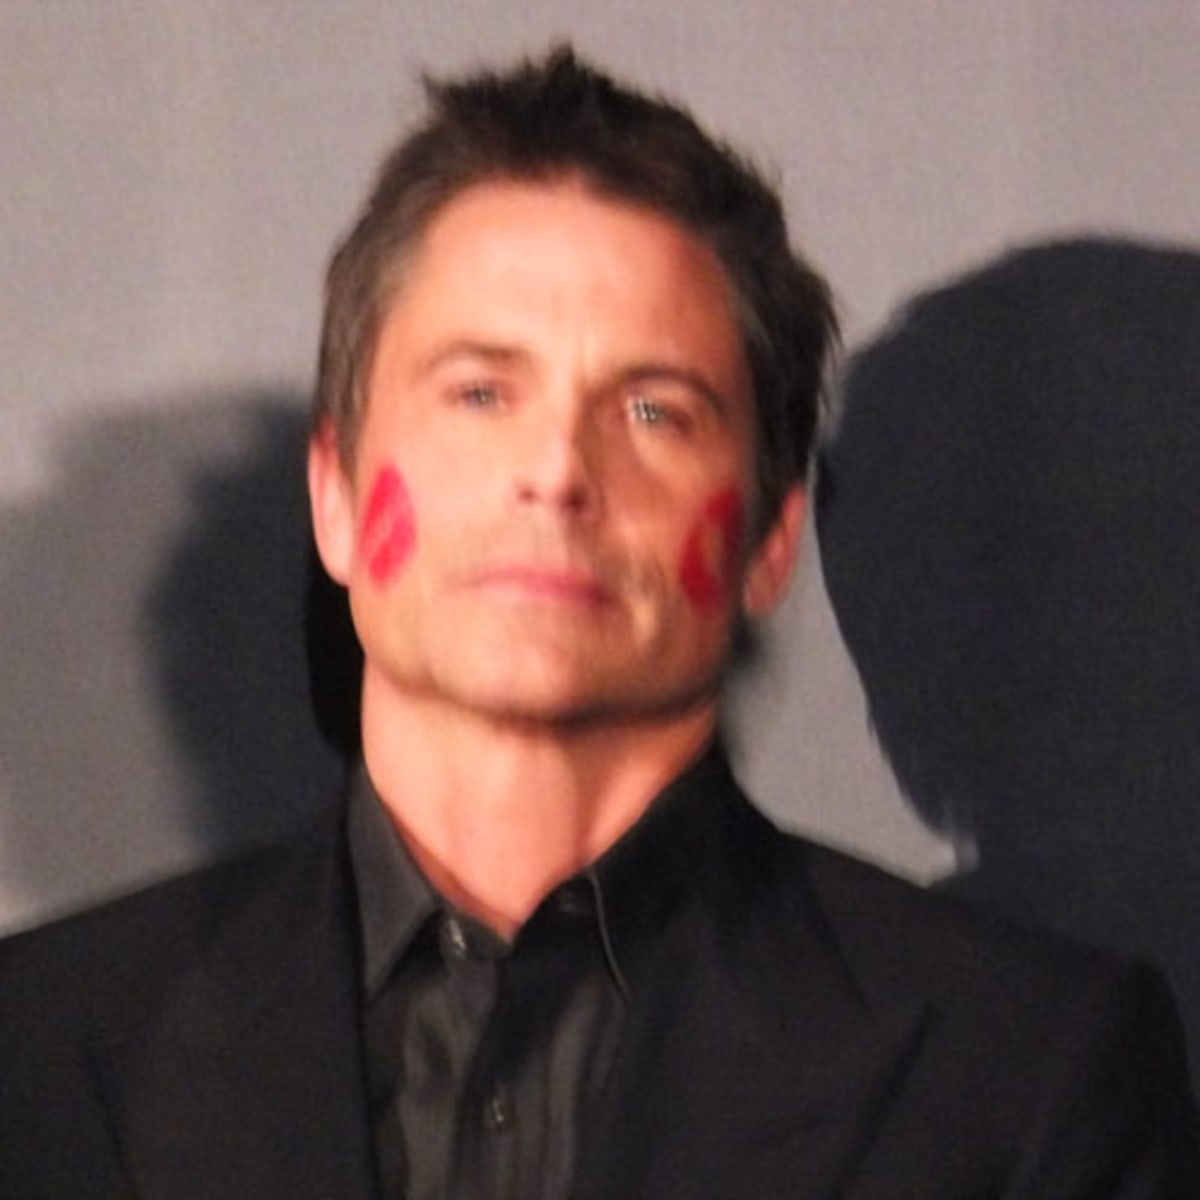 Lipstick Diary: What Rob Lowe Wore That Day - Beautygeeks